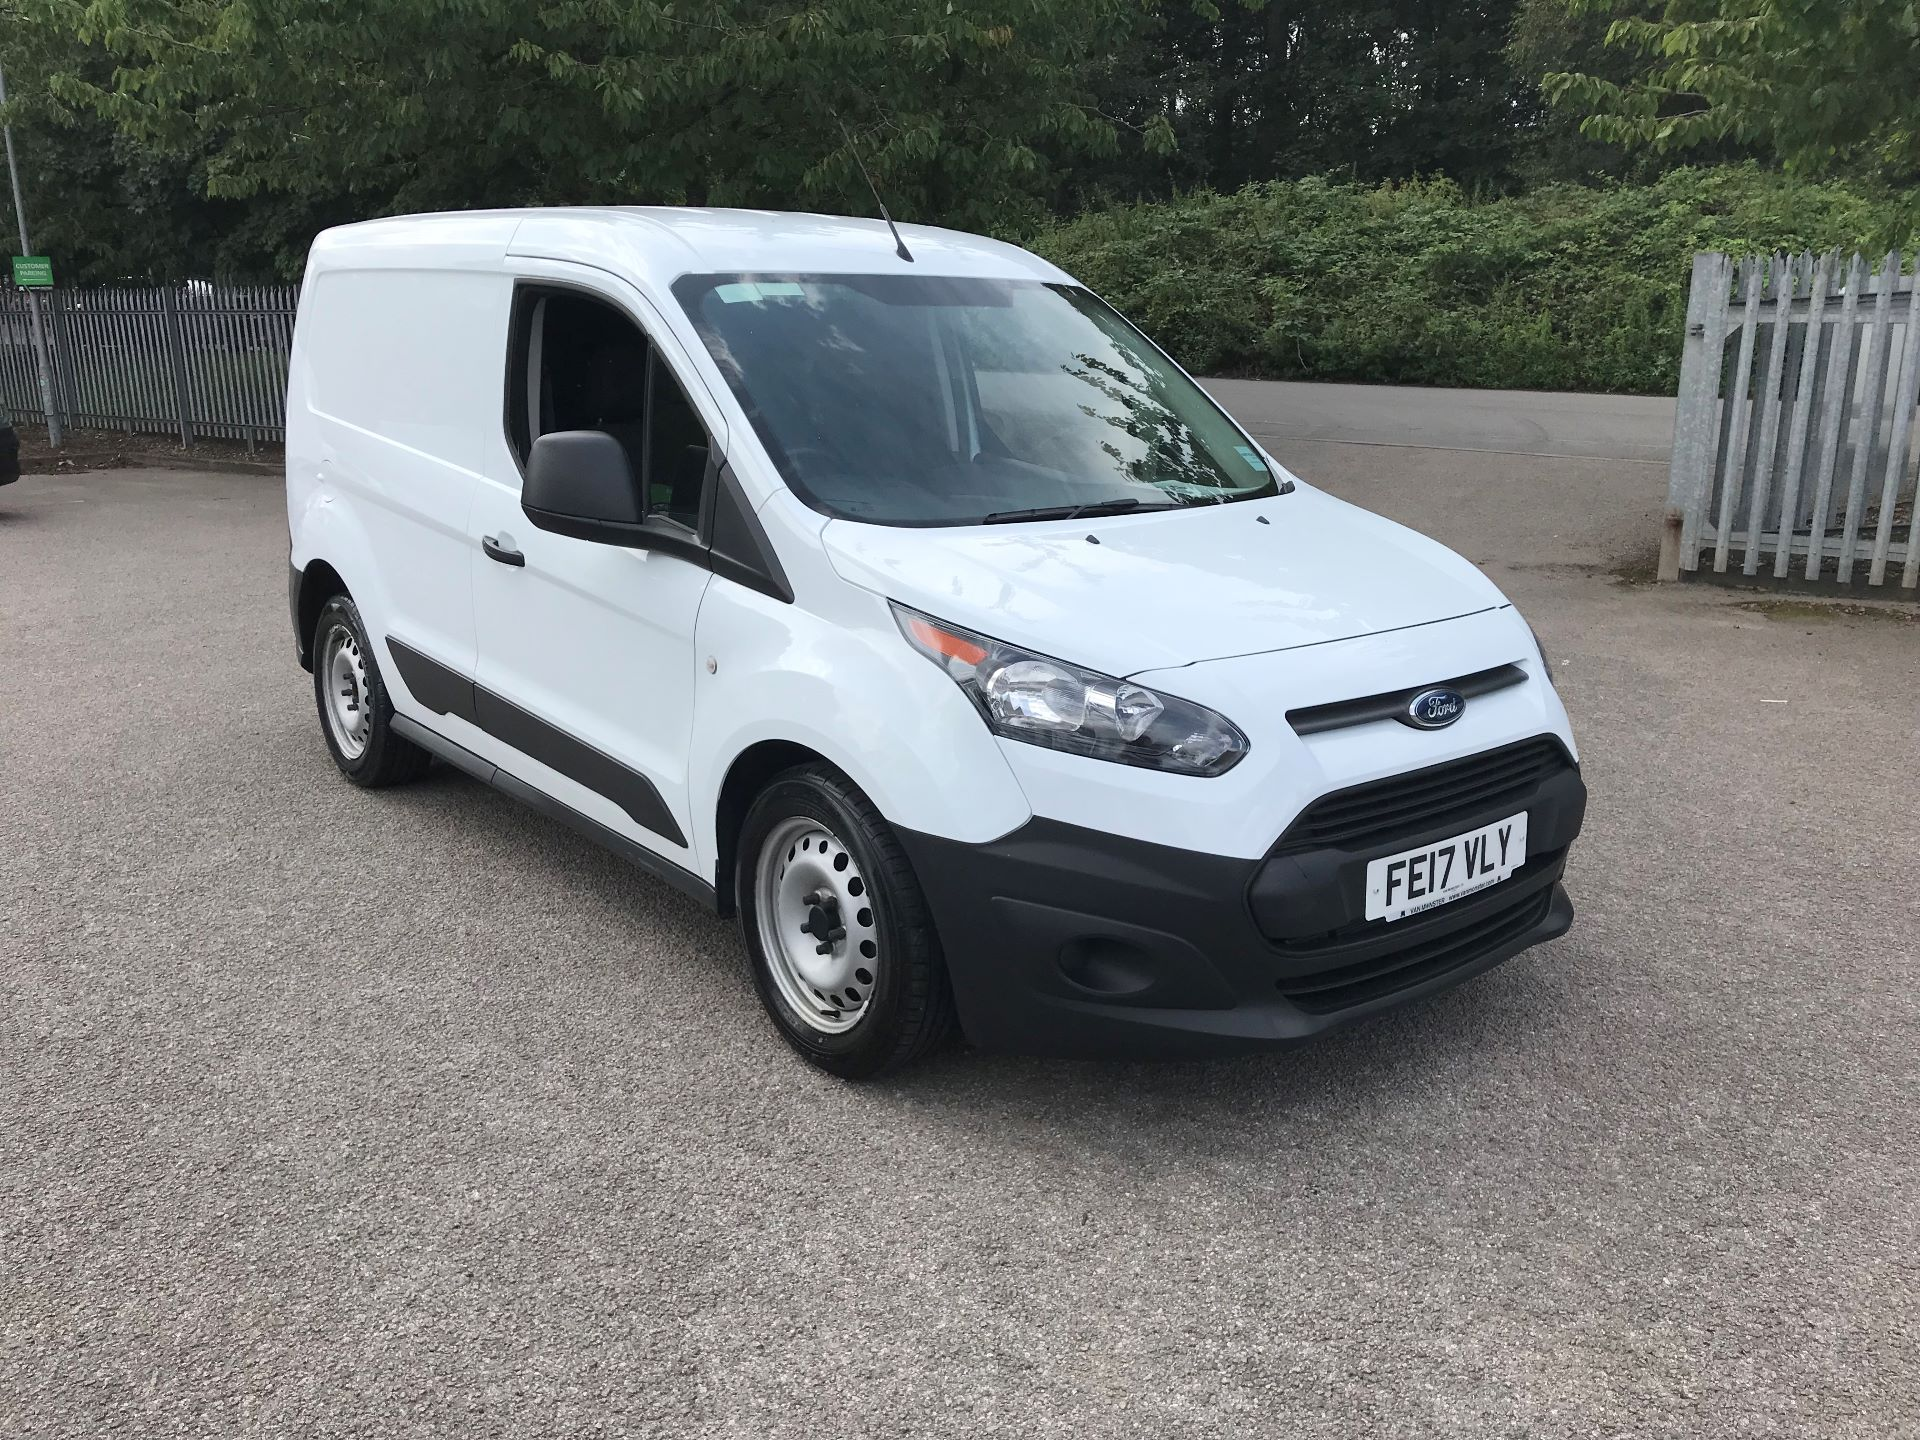 2017 Ford Transit Connect 1.5 Tdci 75Ps Van (FE17VLY)